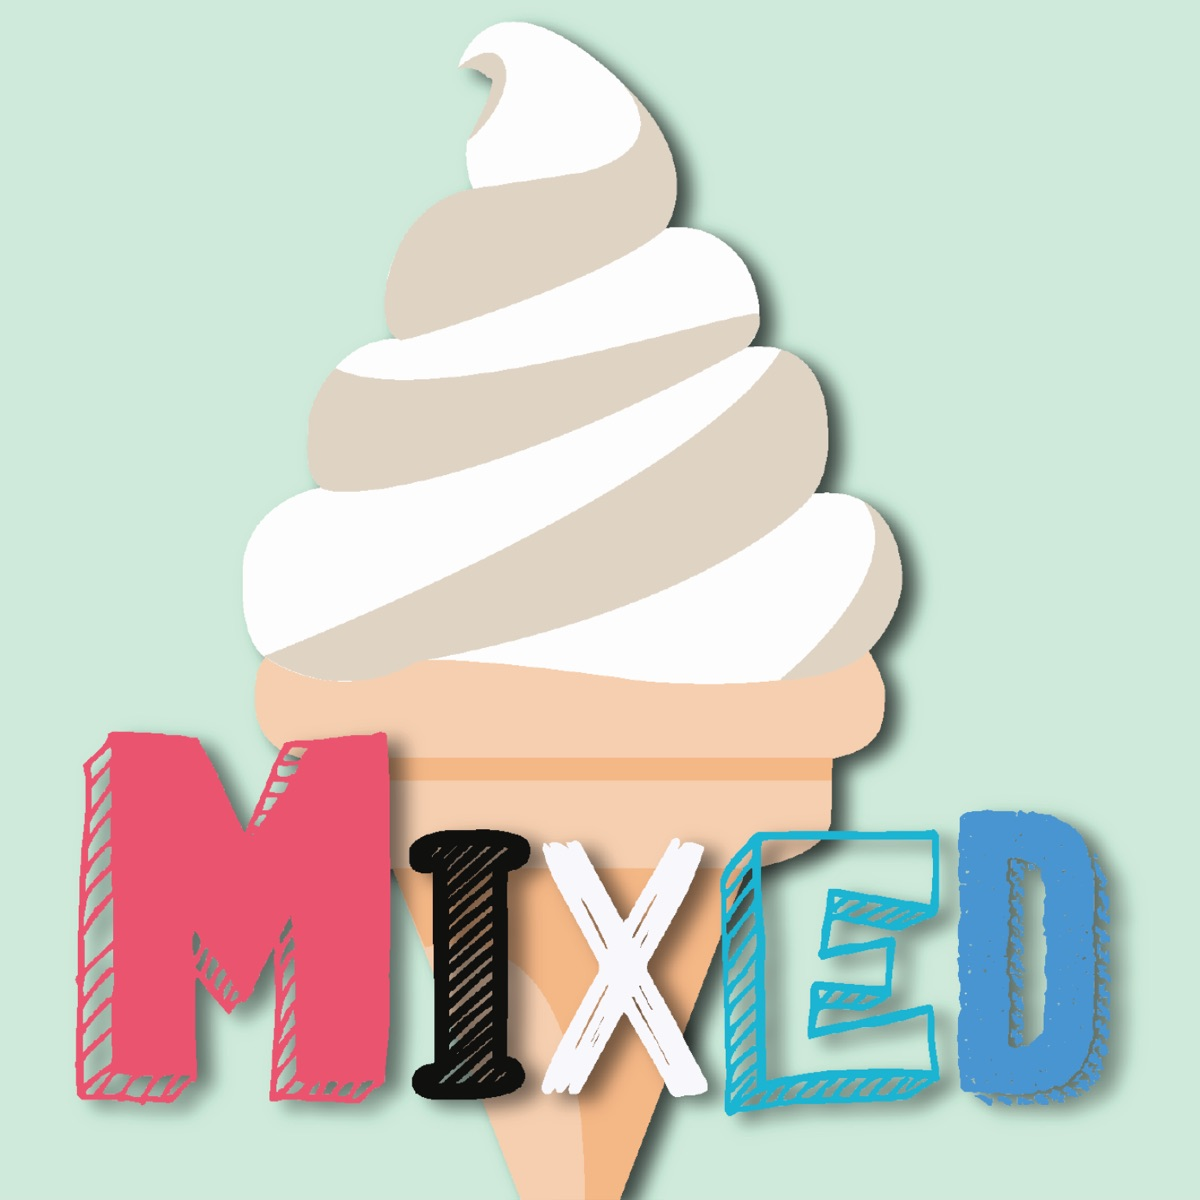 MIXED: Lessons in Multicultural Parenting